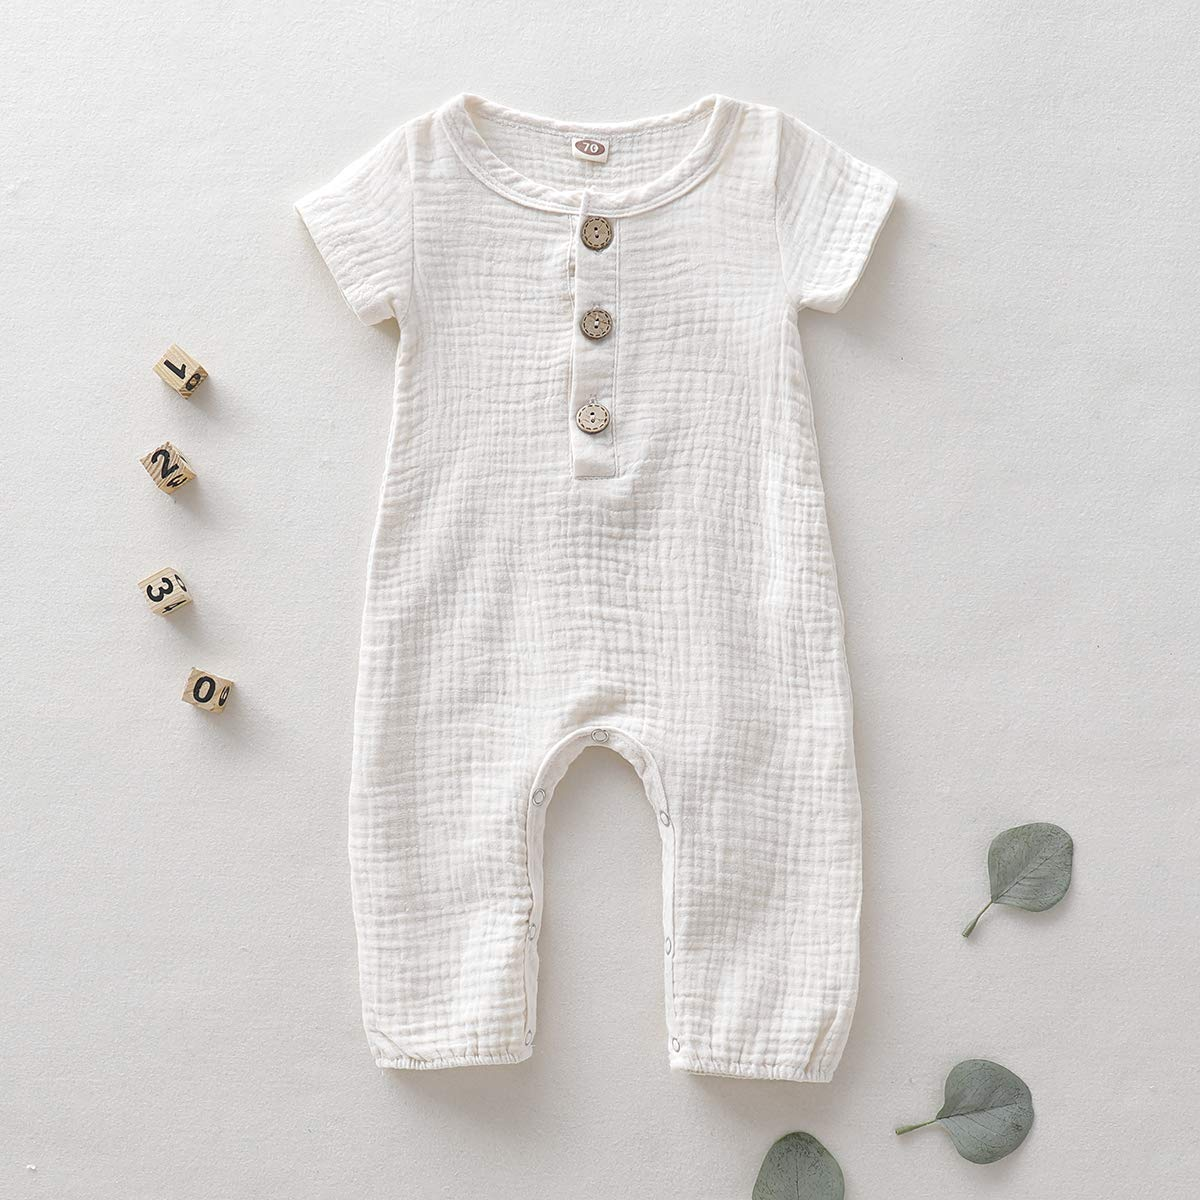 Newborn Baby Girl Jumpsuit Cotton Linen Solid Romper Short Sleeve One-Piece Bodysuit Infant Summer Clothes Outfits